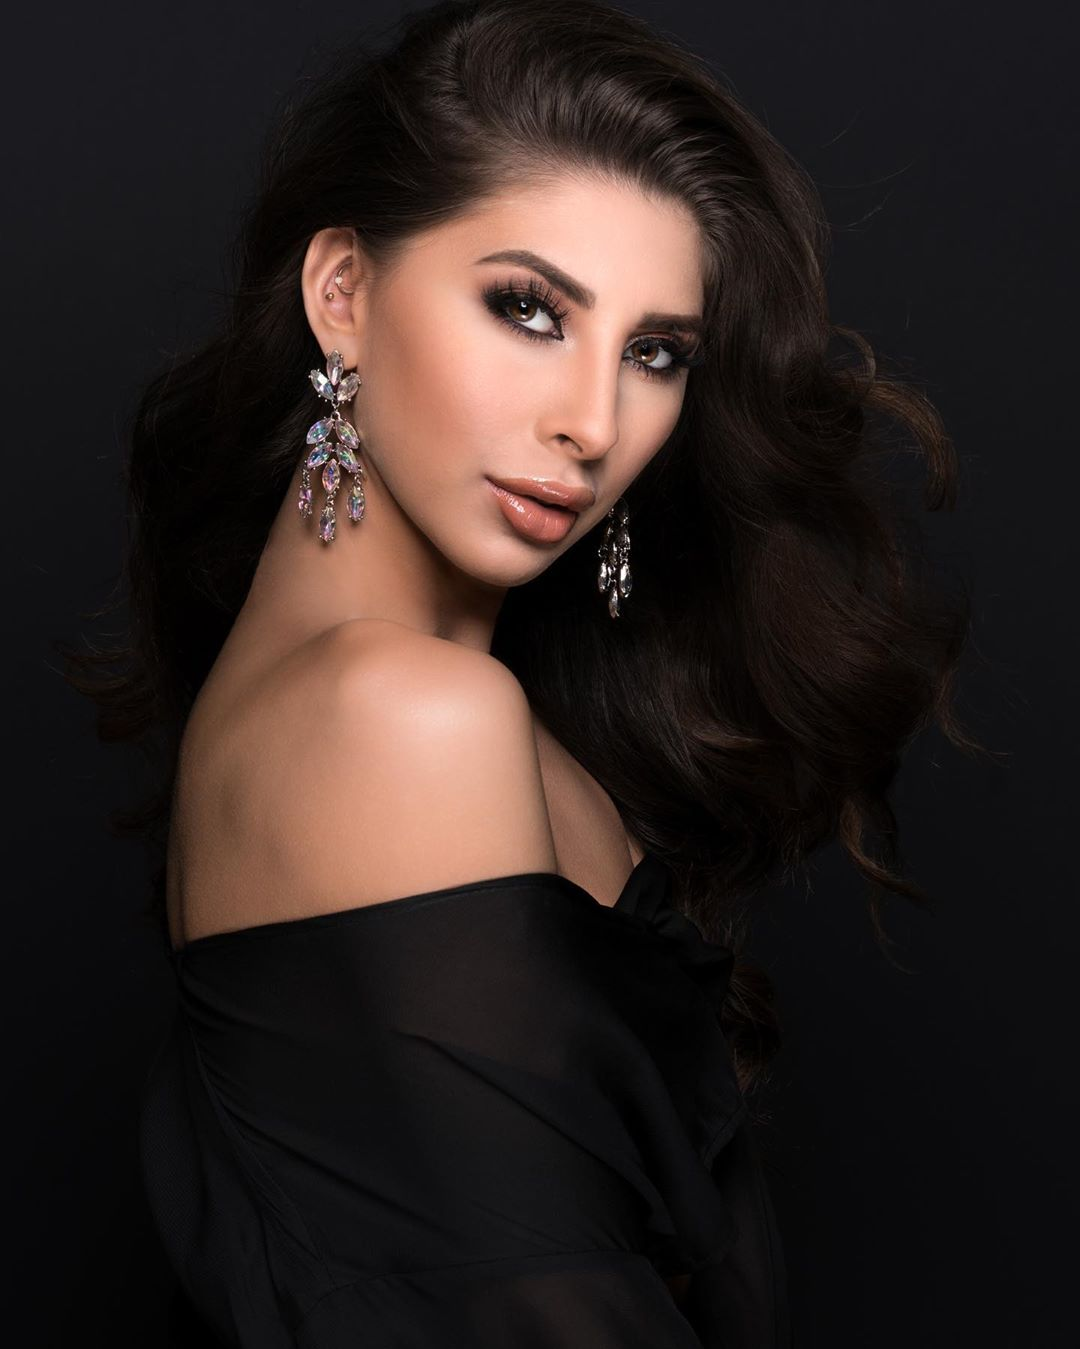 emily irene, miss grand usa 2019. - Página 4 69873910